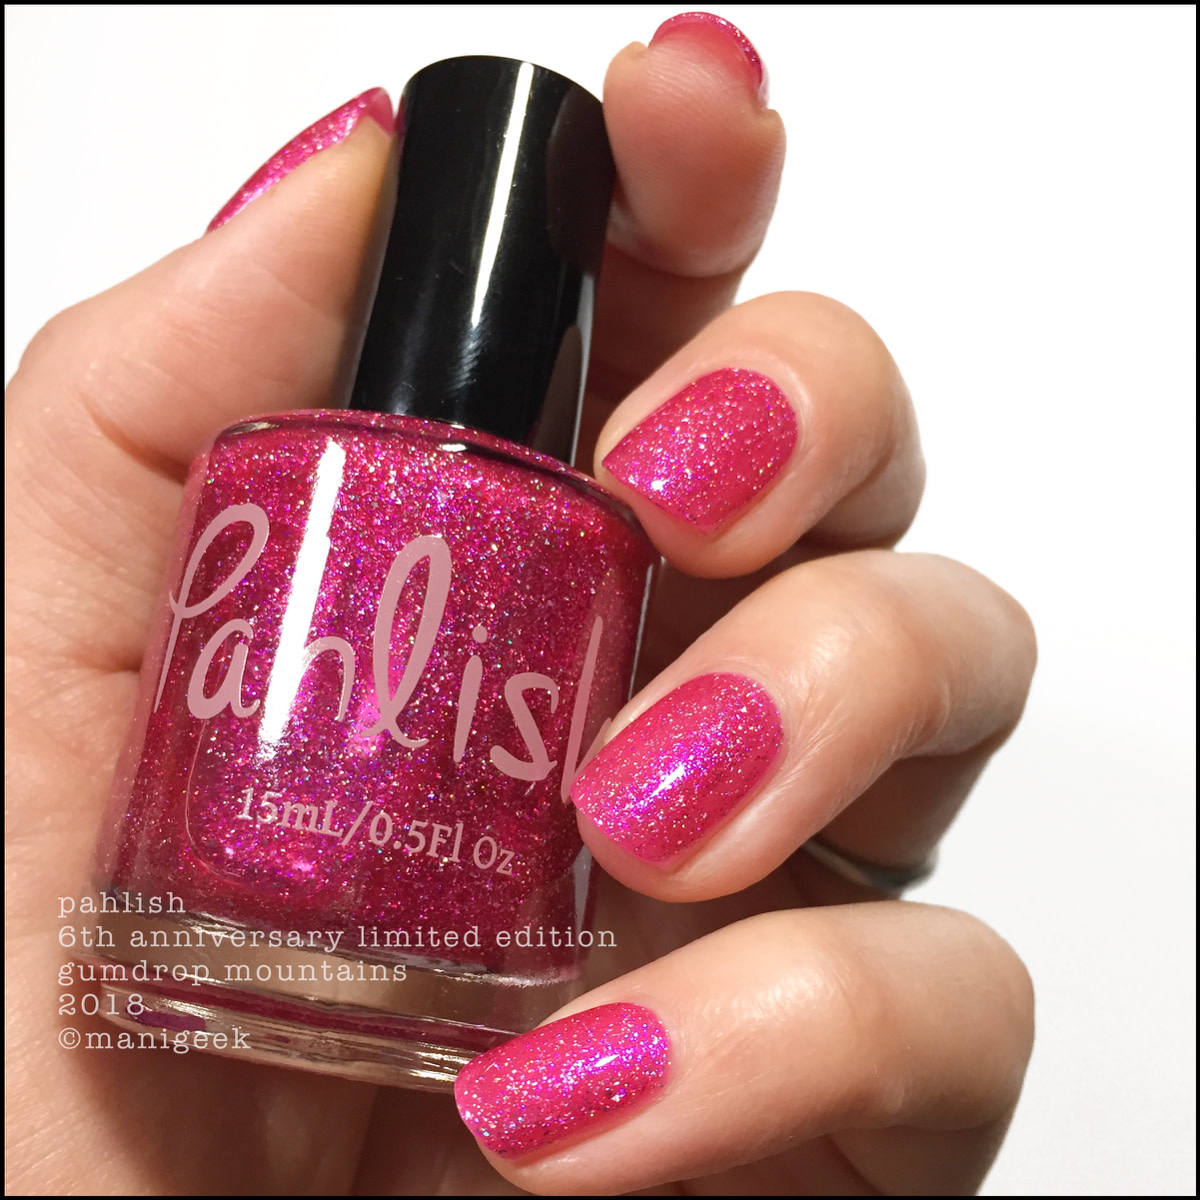 Pahlish Gumdrop Mountains 2 - Limited Edition 6th Anniversary 2018